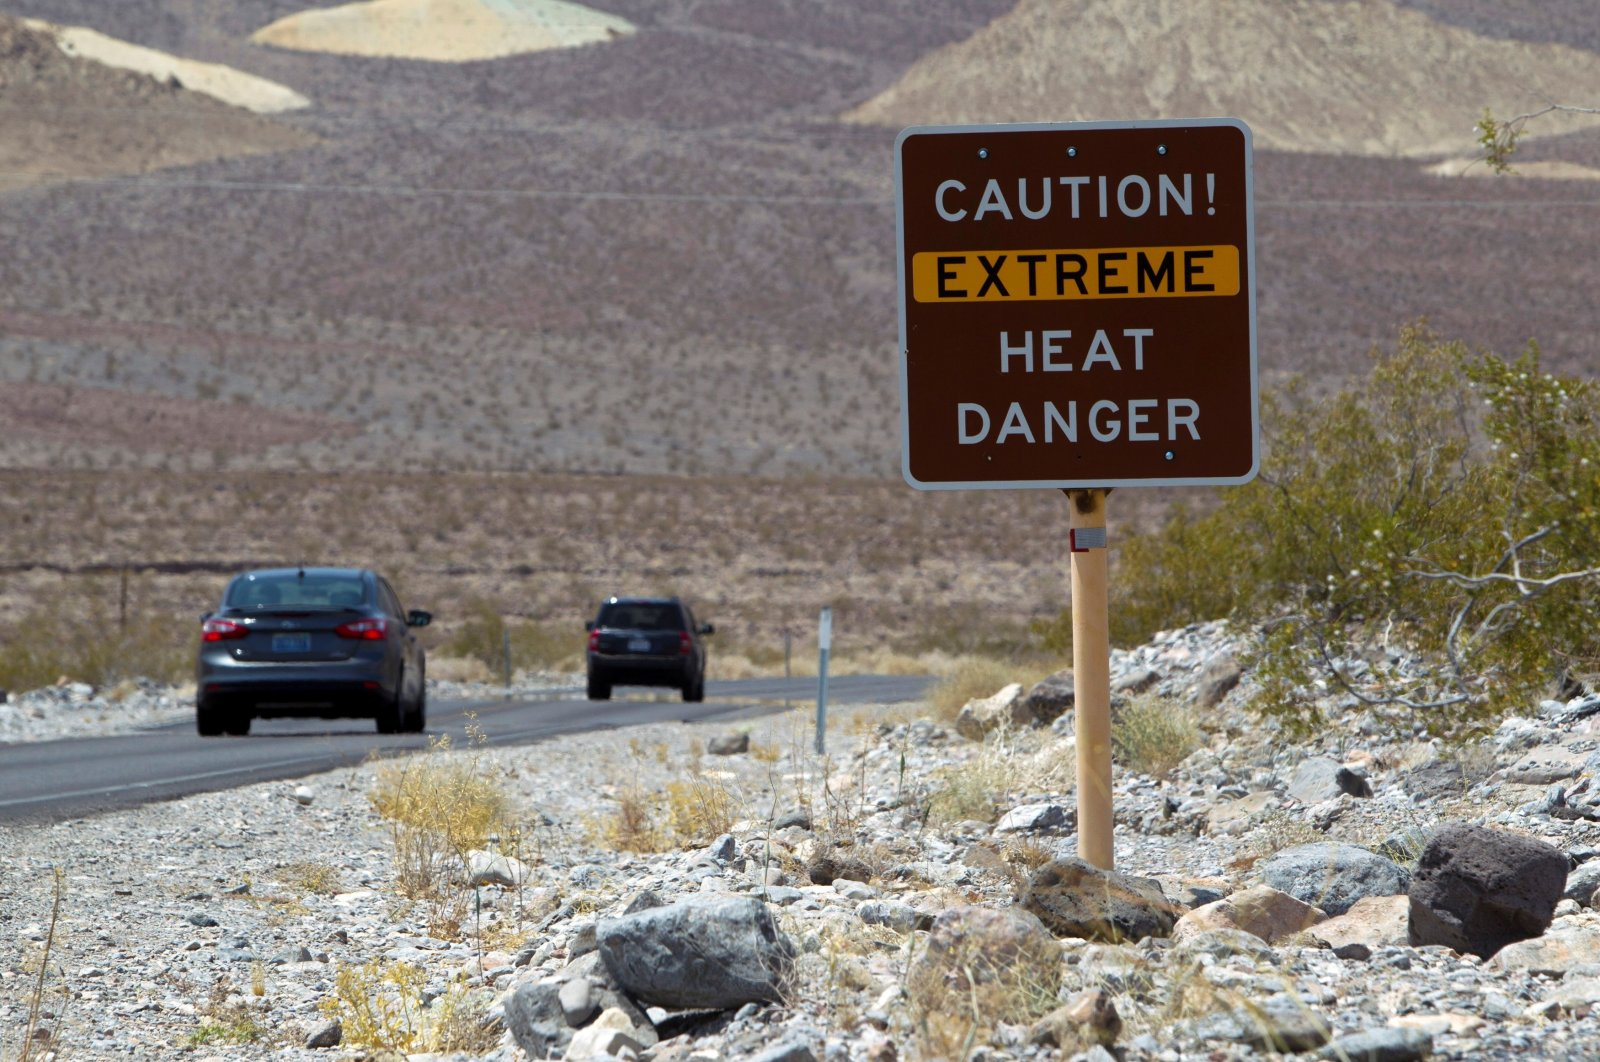 A sign warns of extreme heat as tourists enter Death Valley National Park in California, U.S., June 29, 2013. (Reuters Photo)